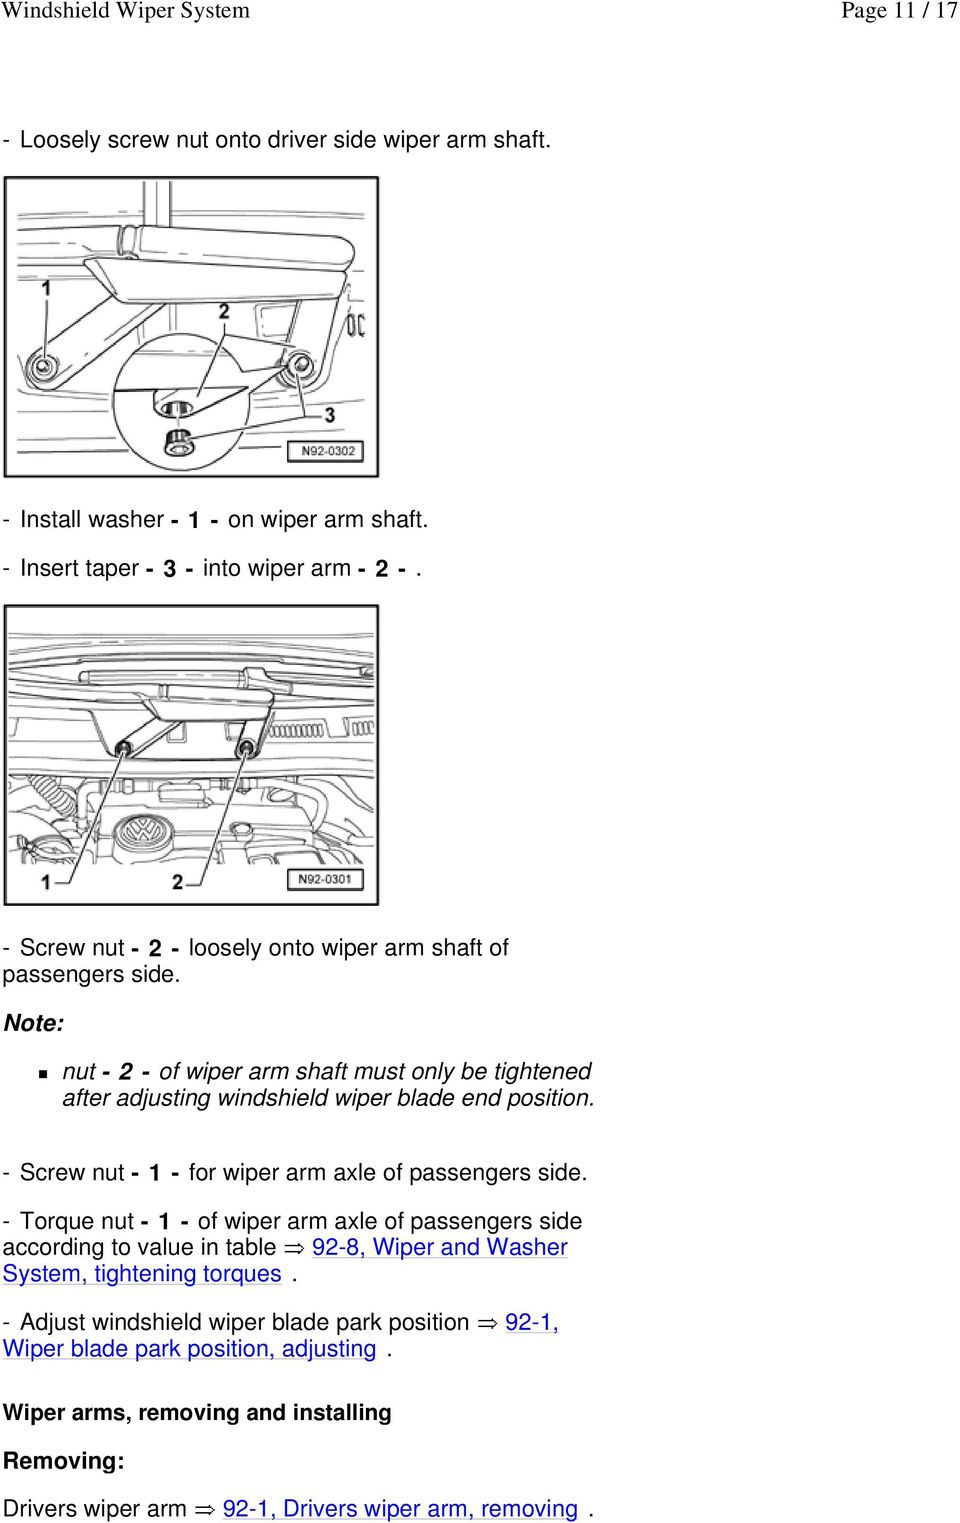 Windshield Wiper System Pdf. Screw Nut 1 For Wiper Arm Axle Of Passengers Side. Chevrolet. 1997 Chevrolet Suburban Windshield Washers Systems Diagrams At Scoala.co